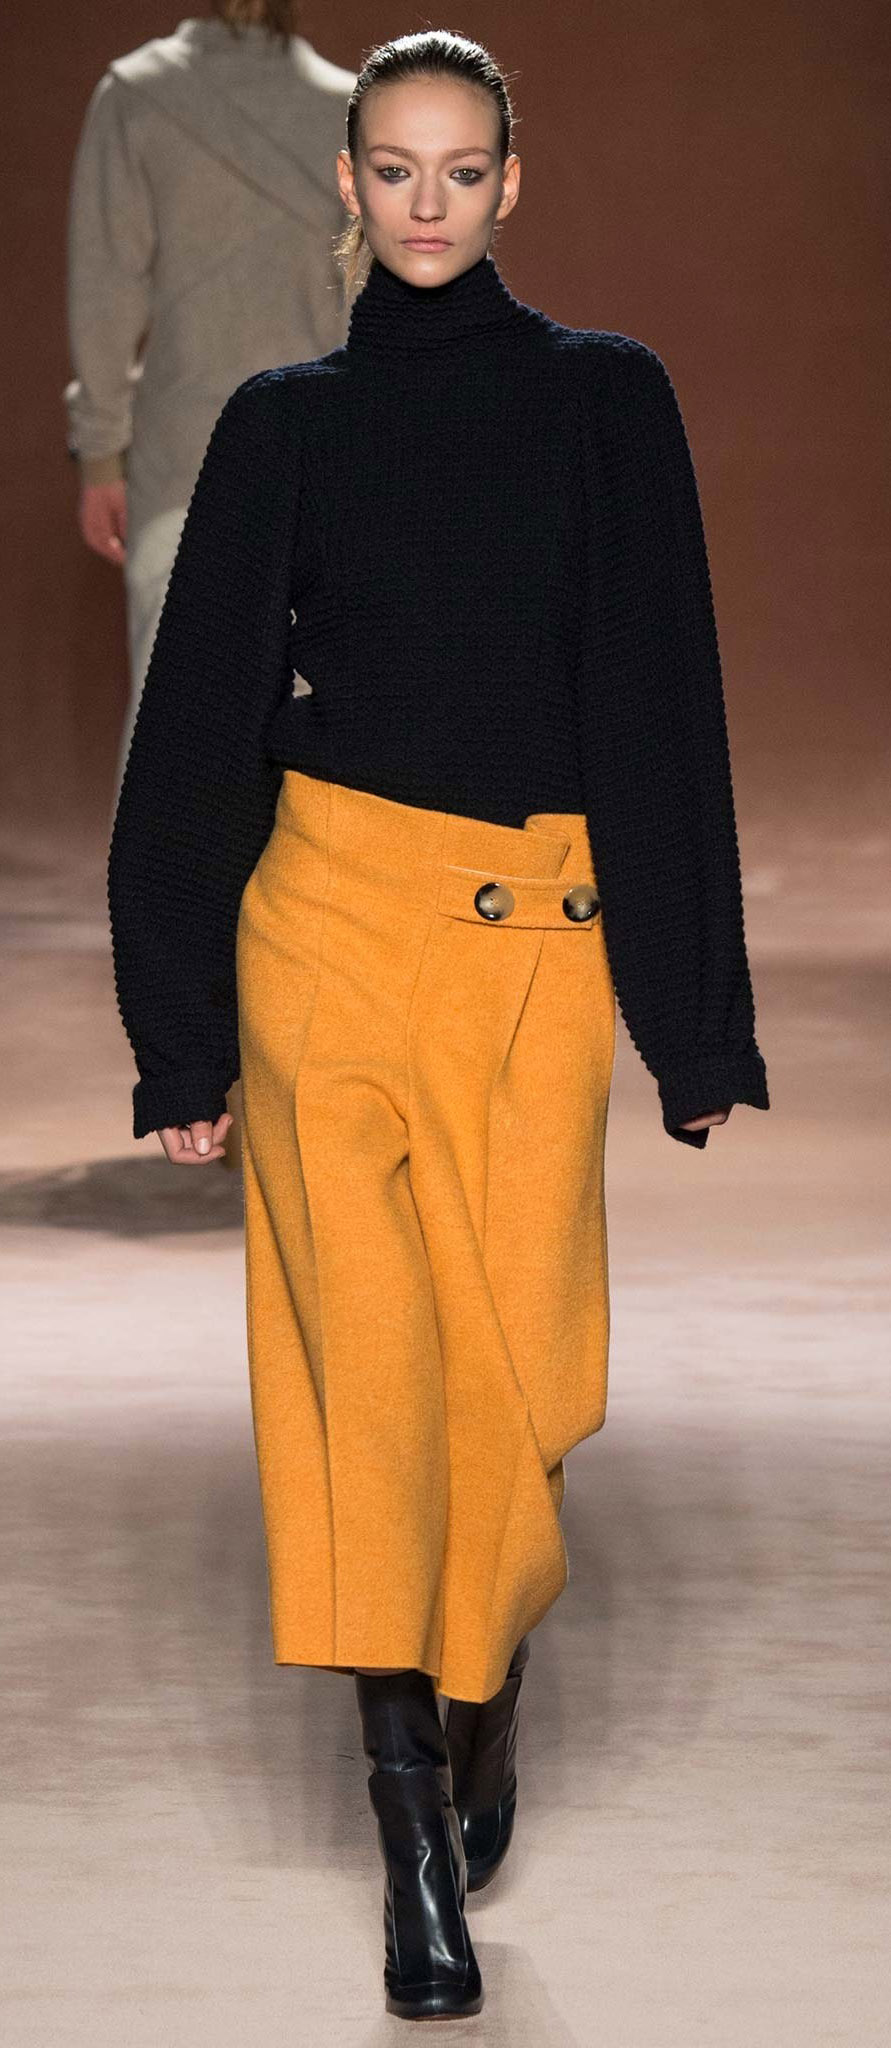 detail-dramatic-style-type-yellow-culottes-pant-black-sweater-oversized-turtleneck-runway-boots.jpg